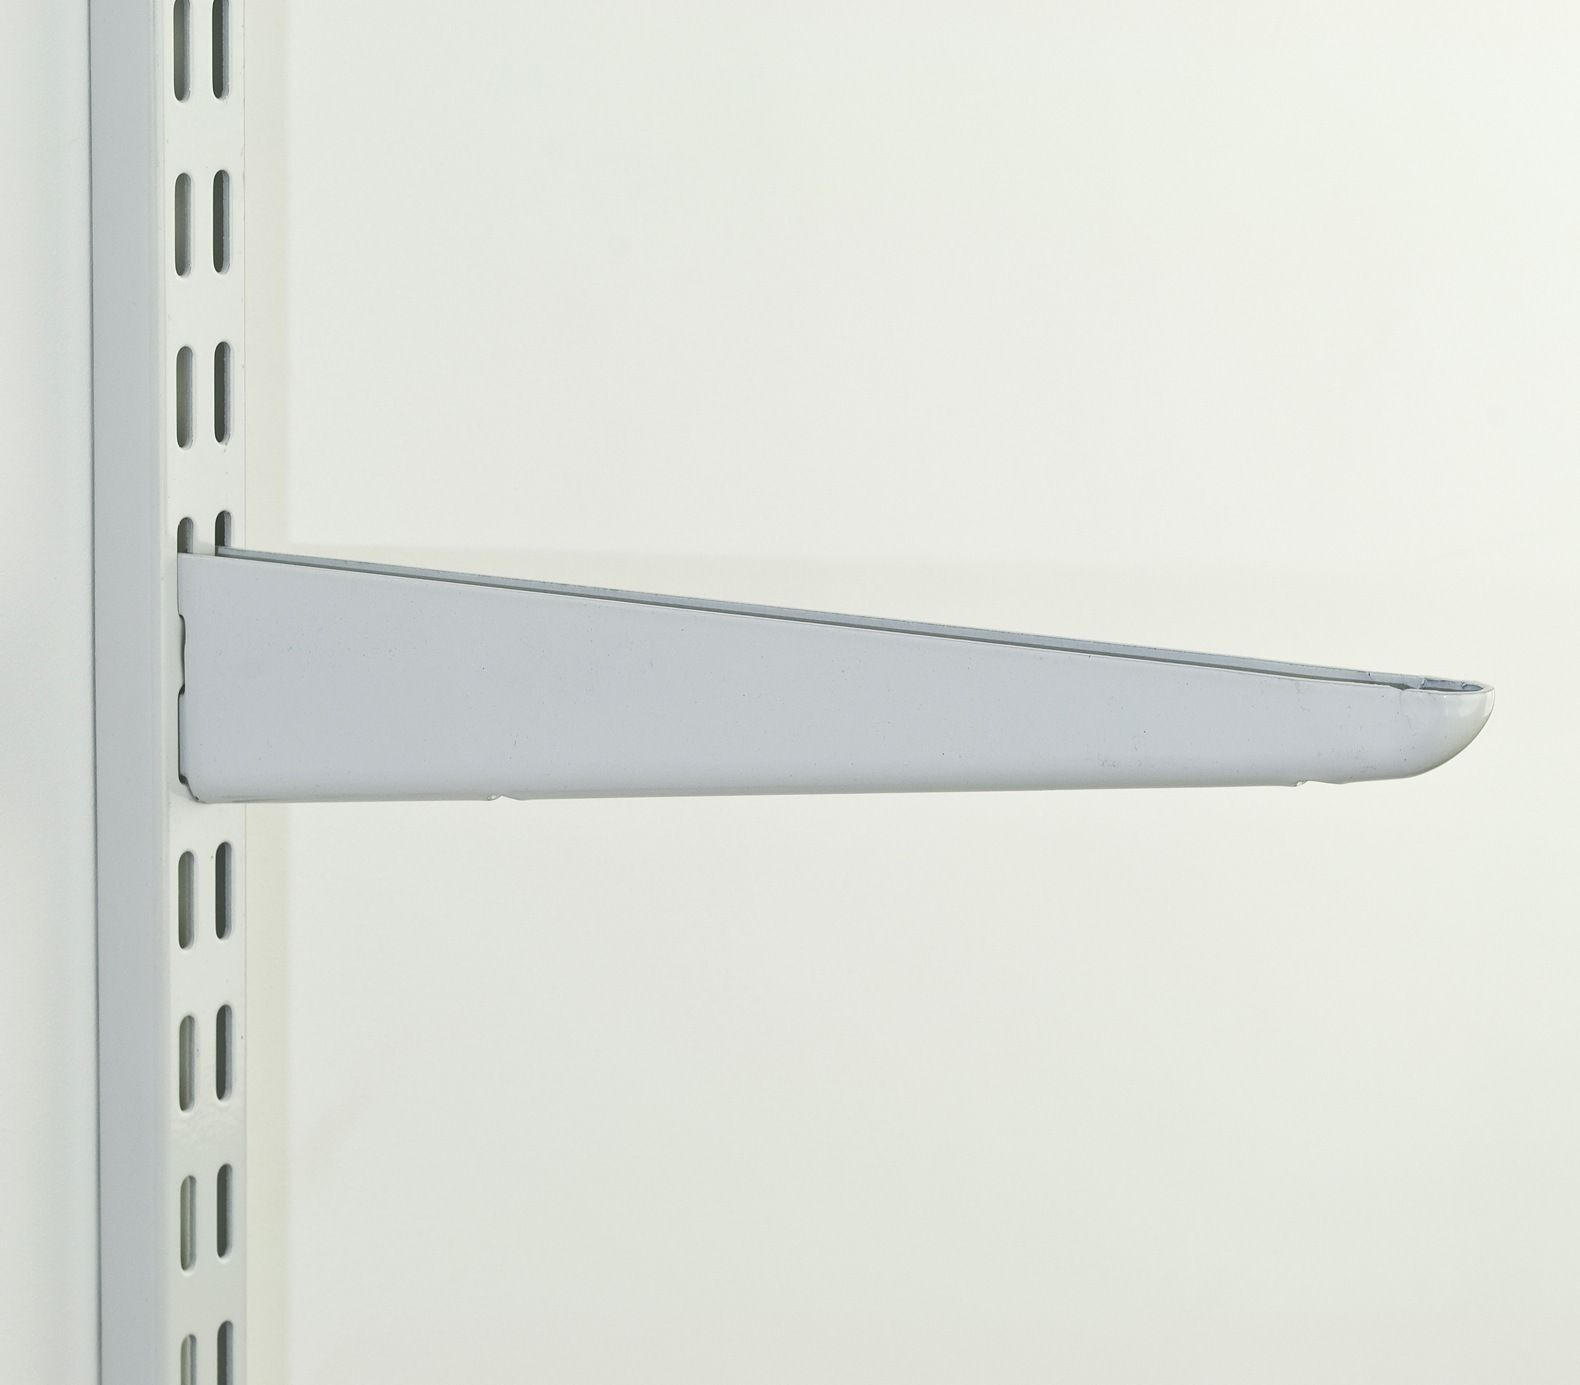 Twin Slot Shelving Shelf Brackets Uprights Flexible